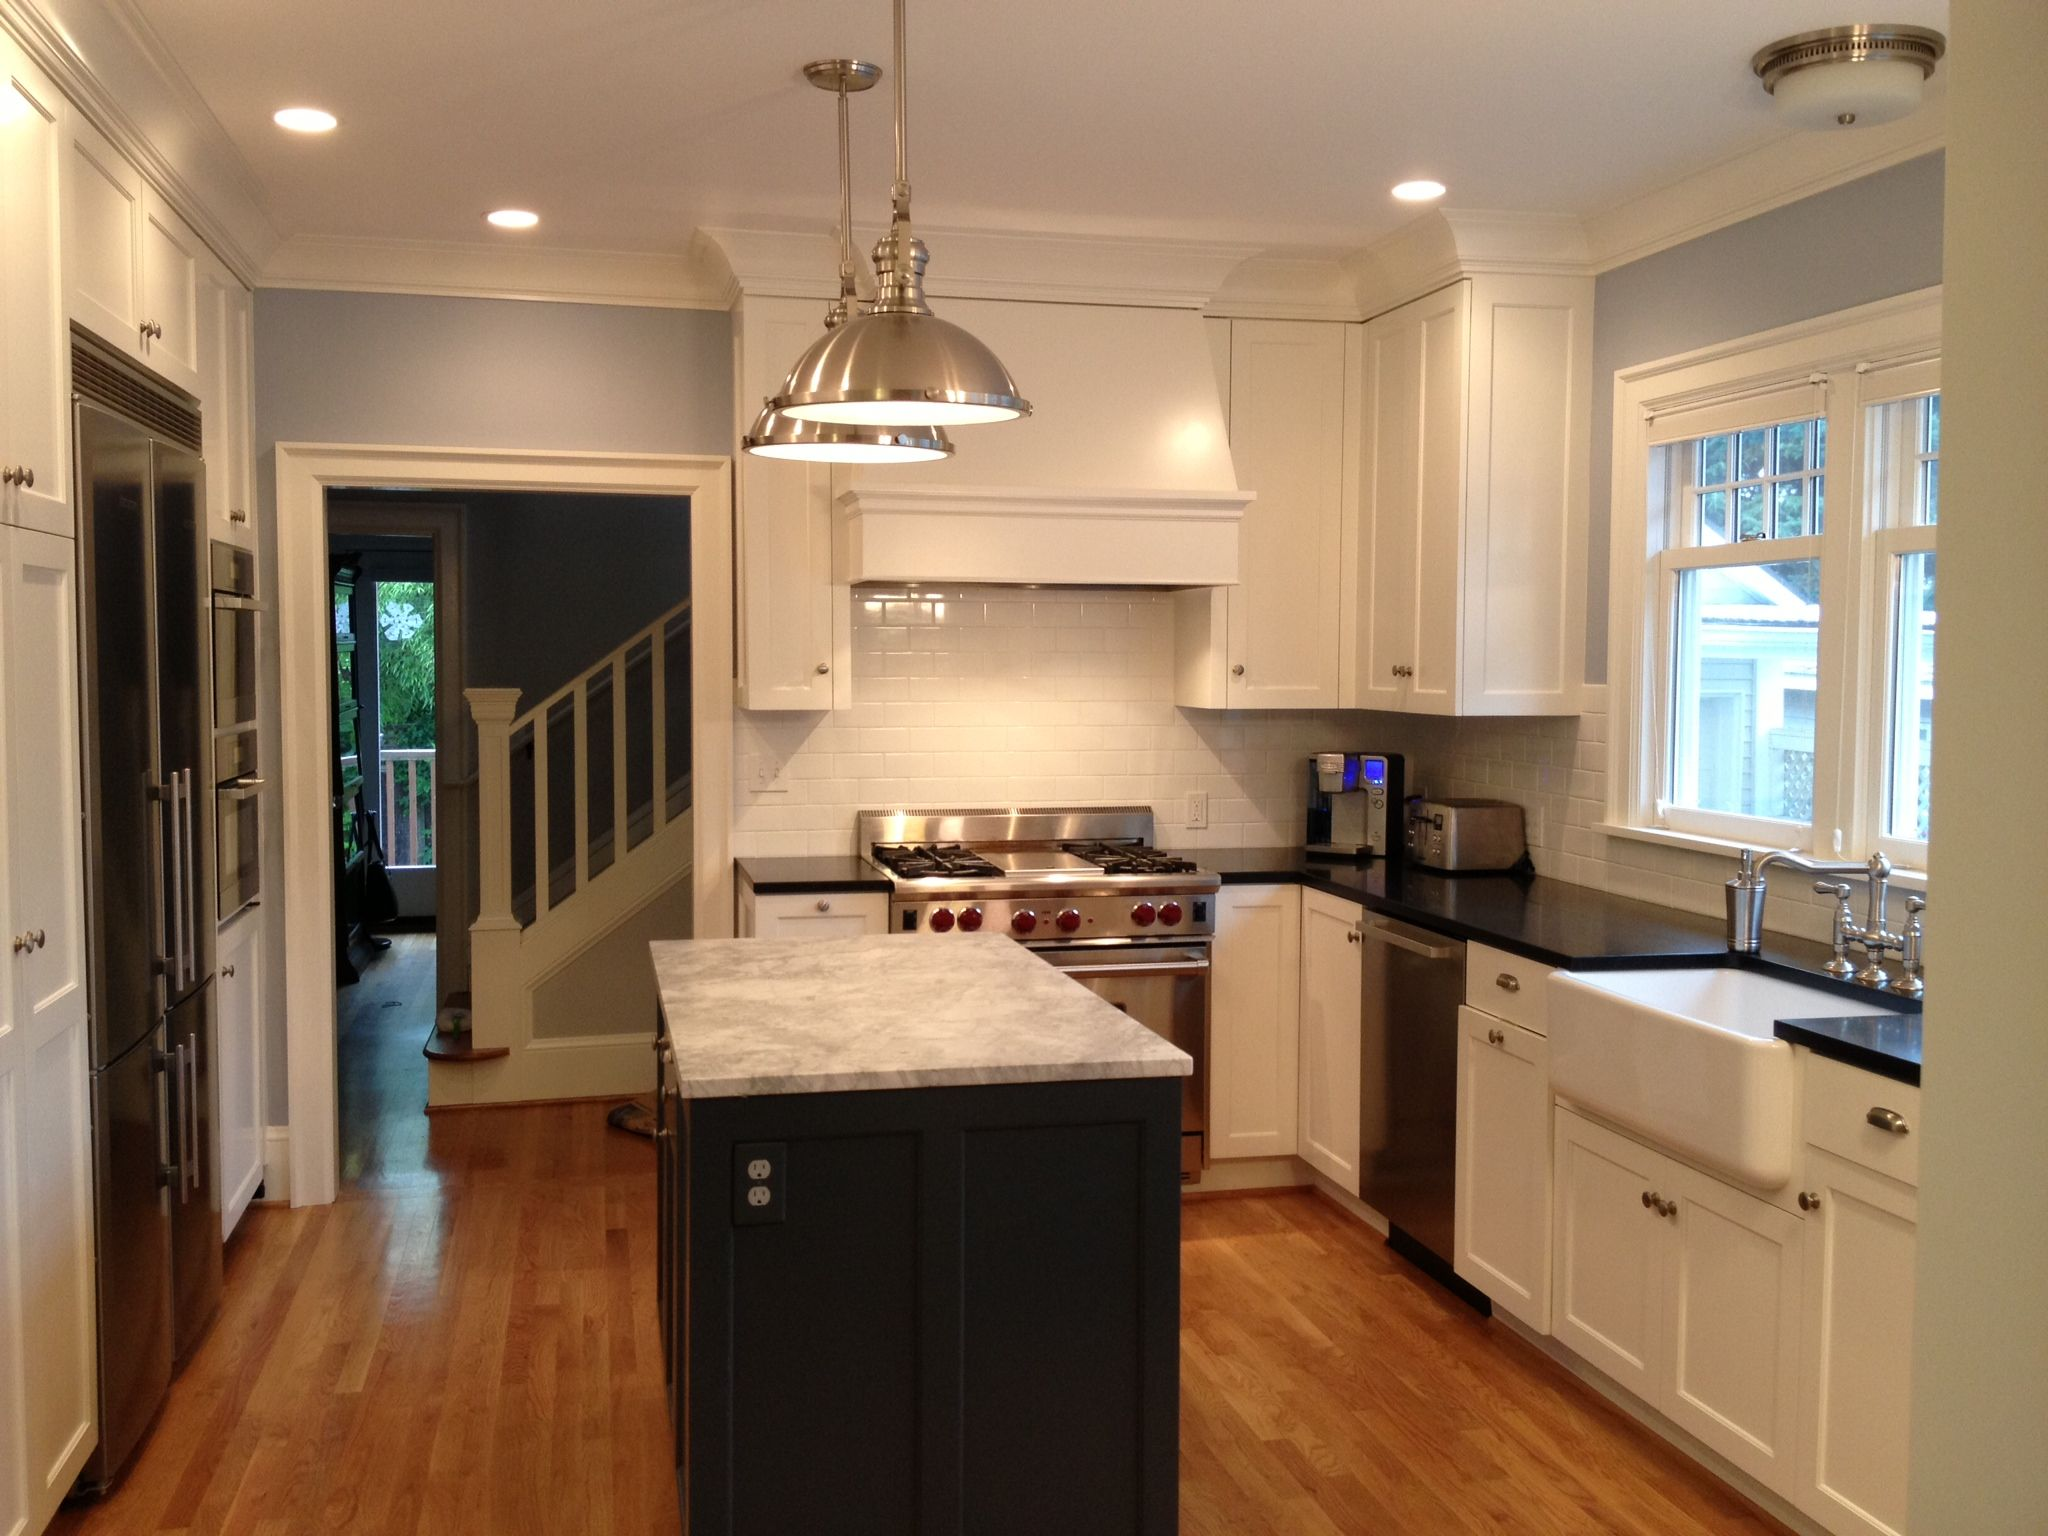 Full kitchen view in 1920 39 s home white custom cabinets for Dark kitchen cabinets with light island